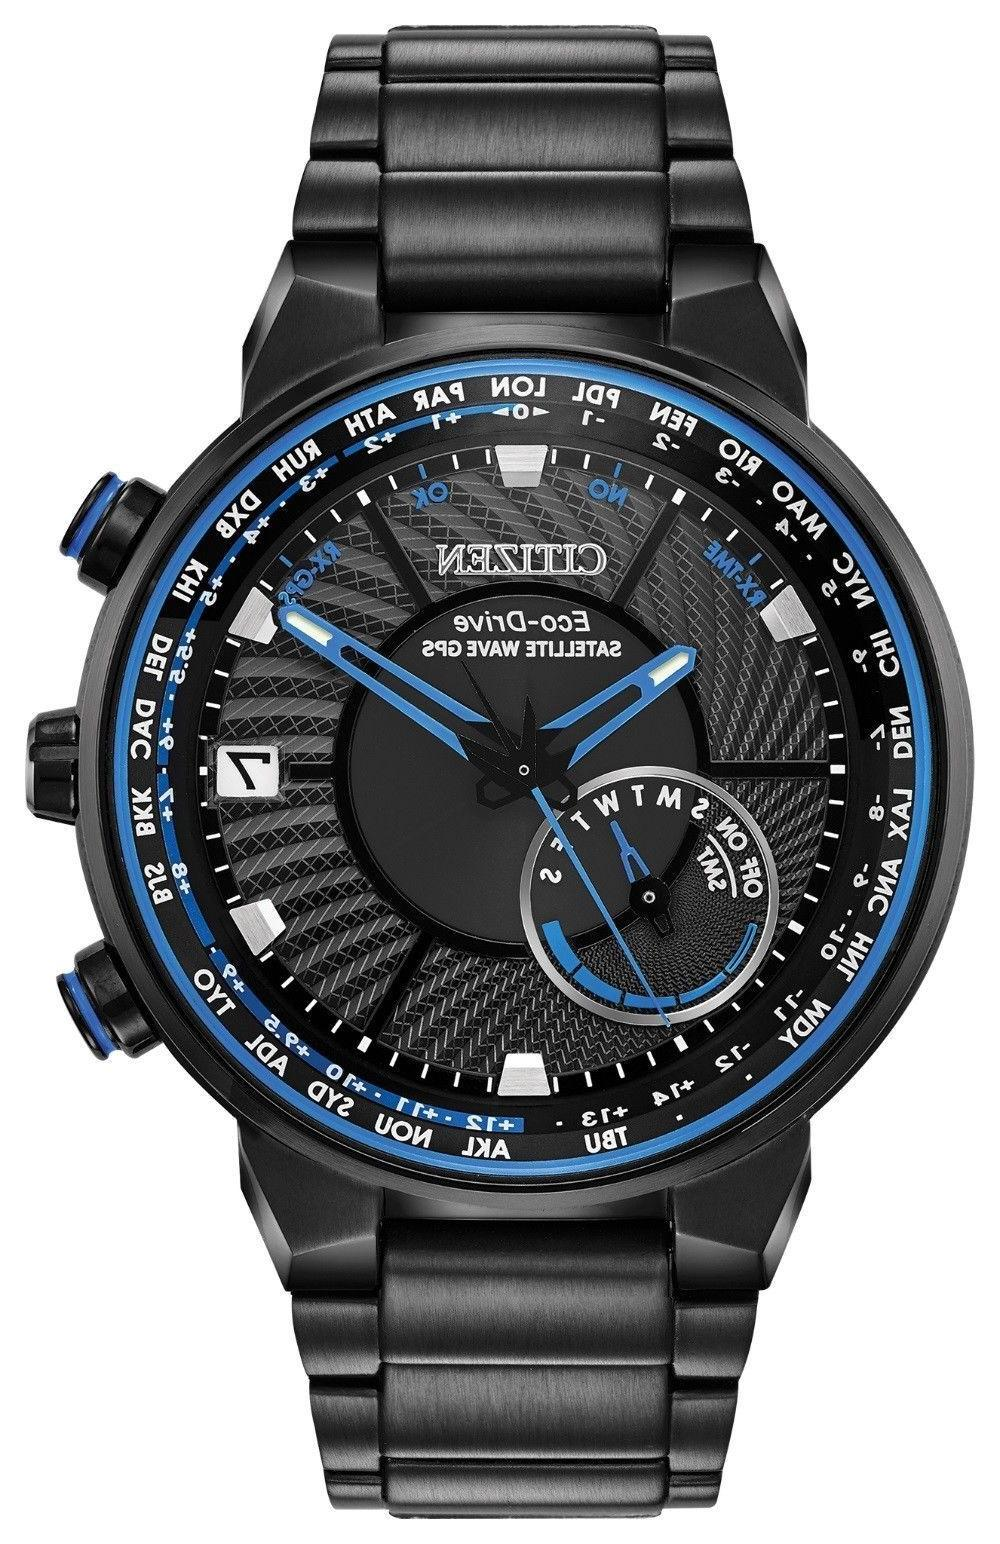 new citizen cc3038 51e satellite wave gps